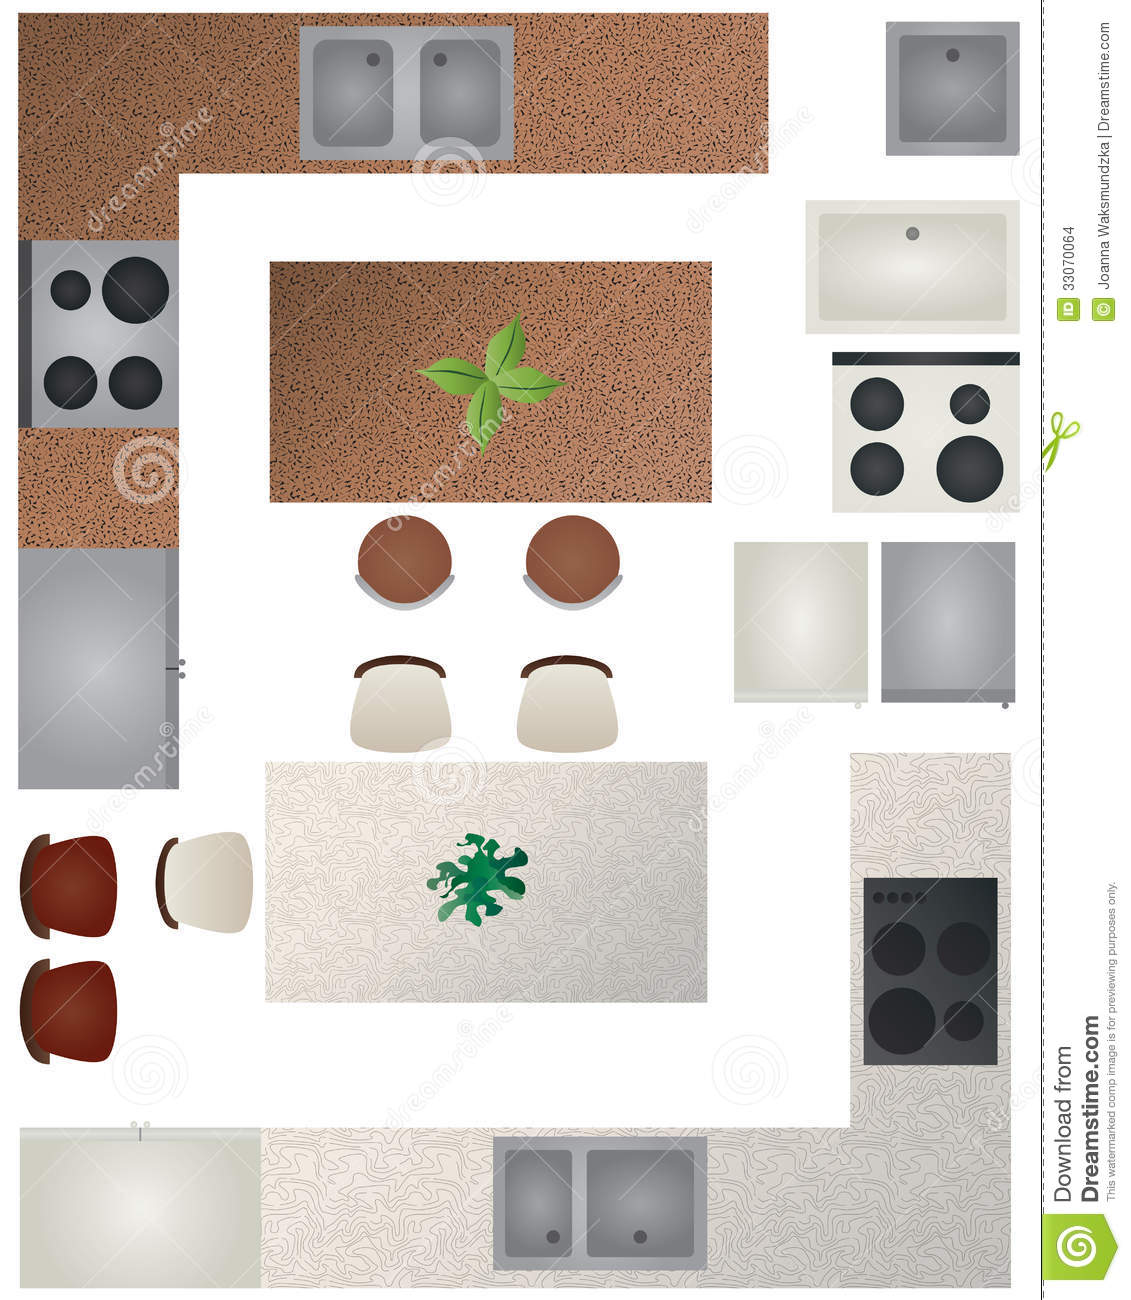 kitchen chair design plans high chairs kmart floor plan collection stock vector illustration